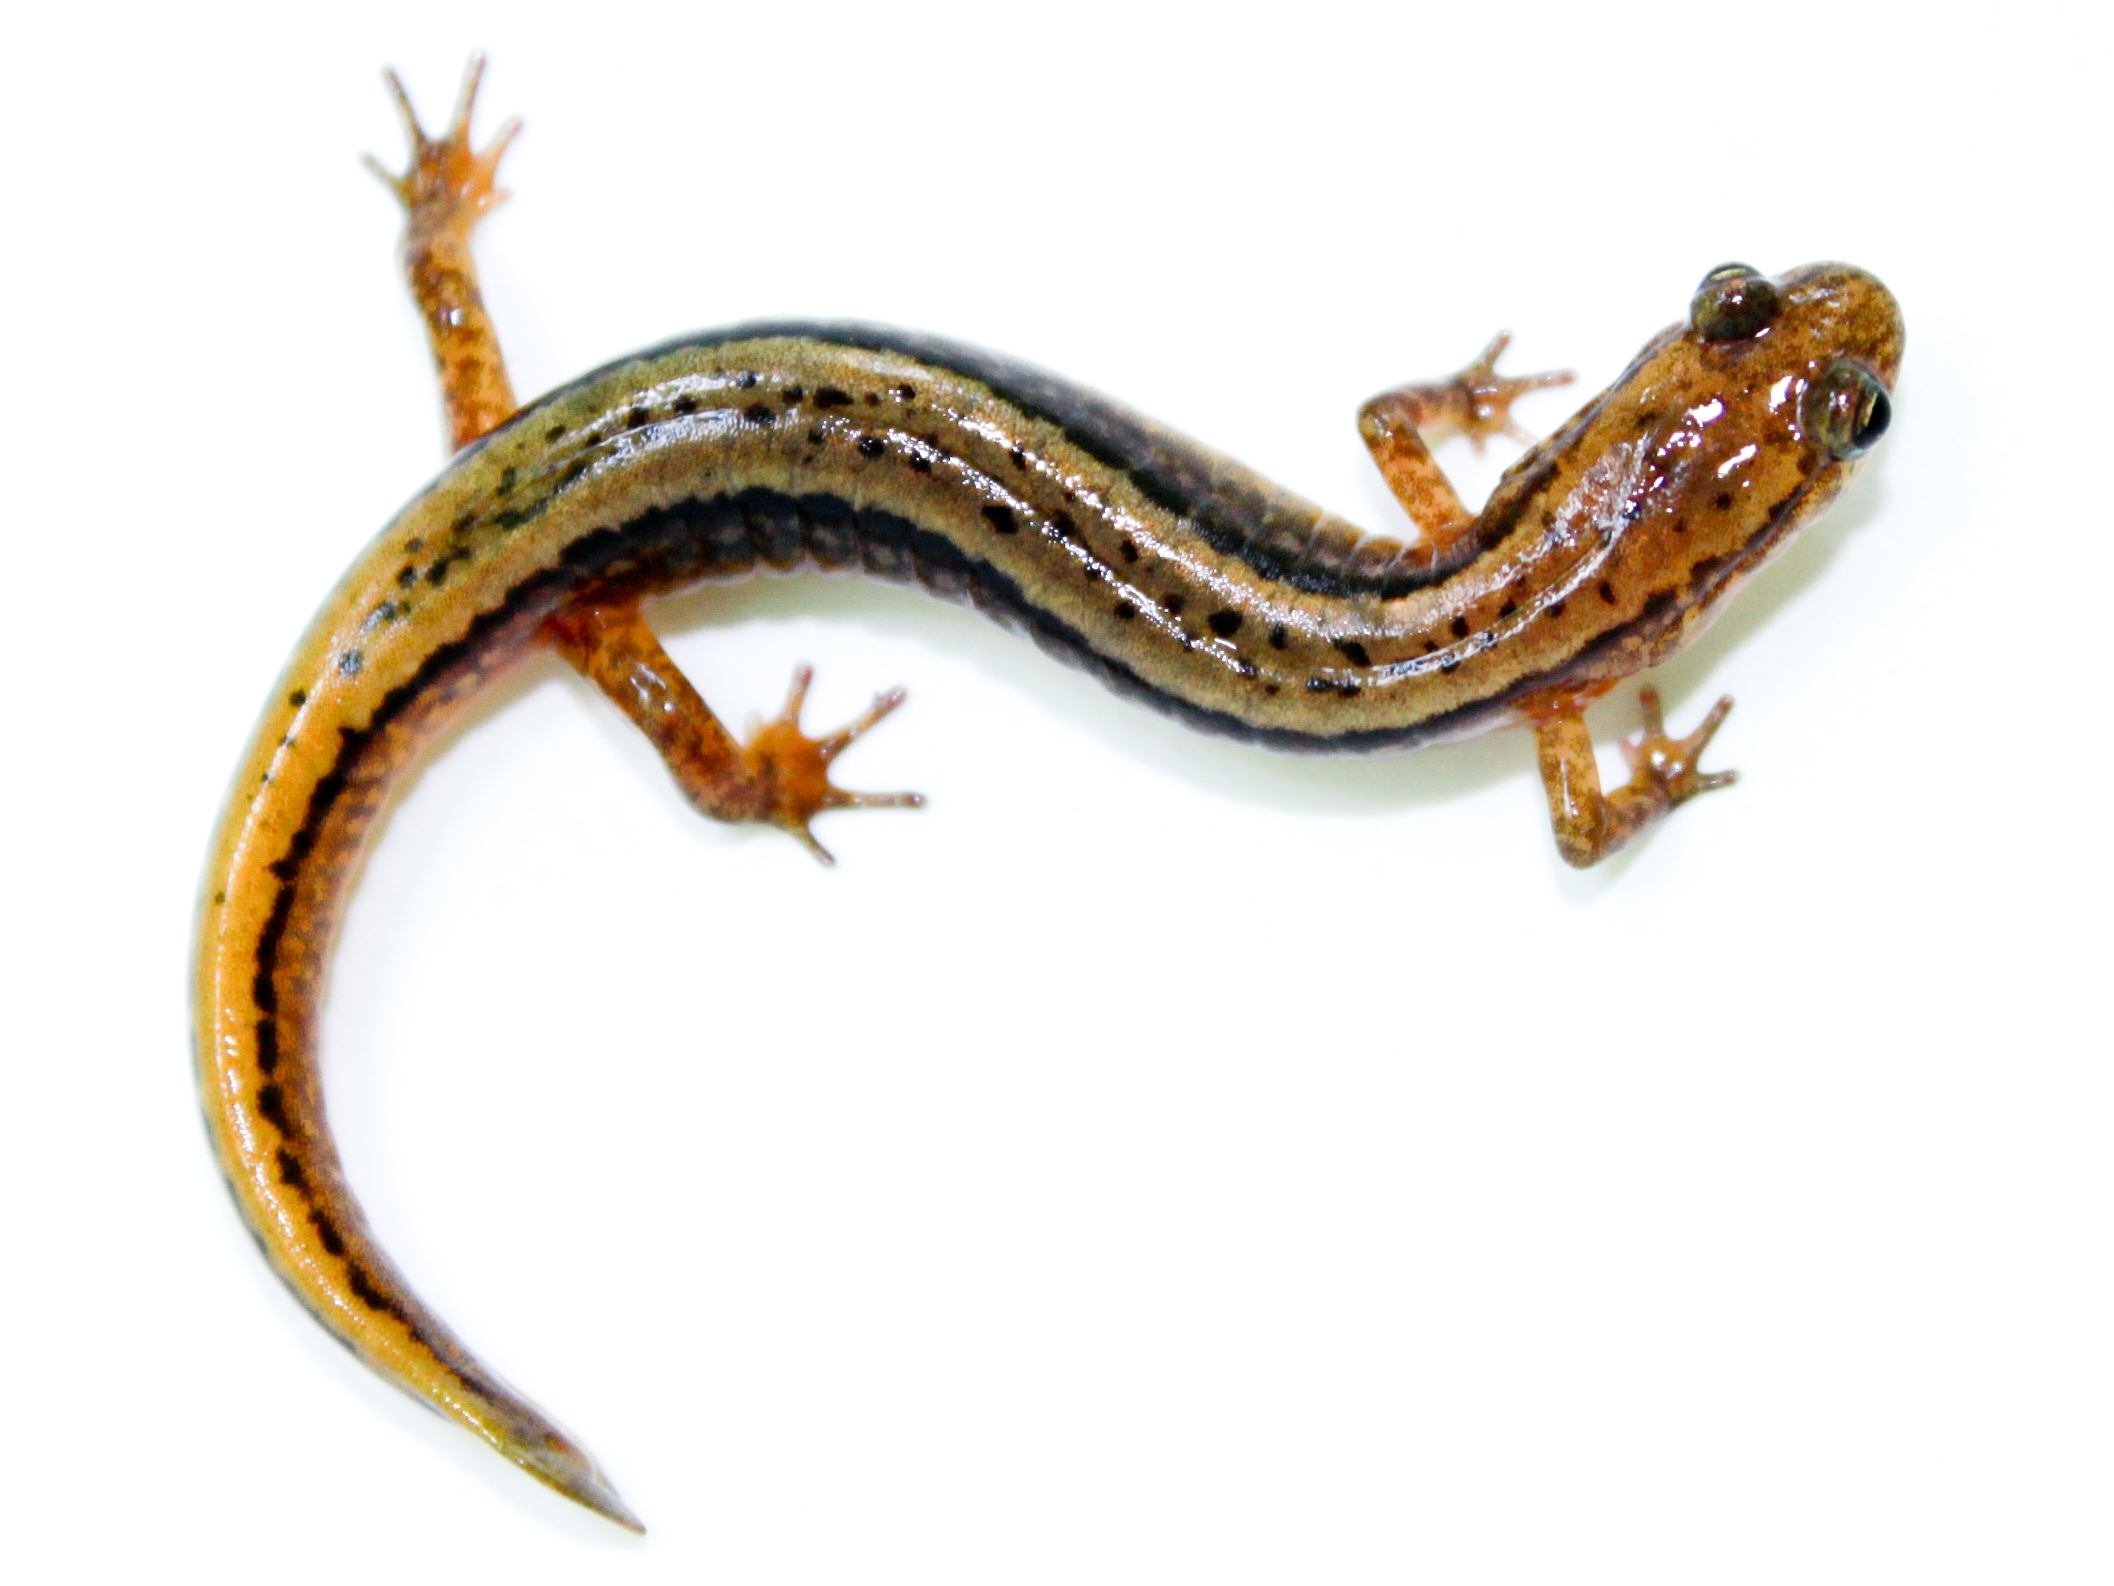 Northern two-lined SALAMANDER - Wikipedia, the free encyclopedia